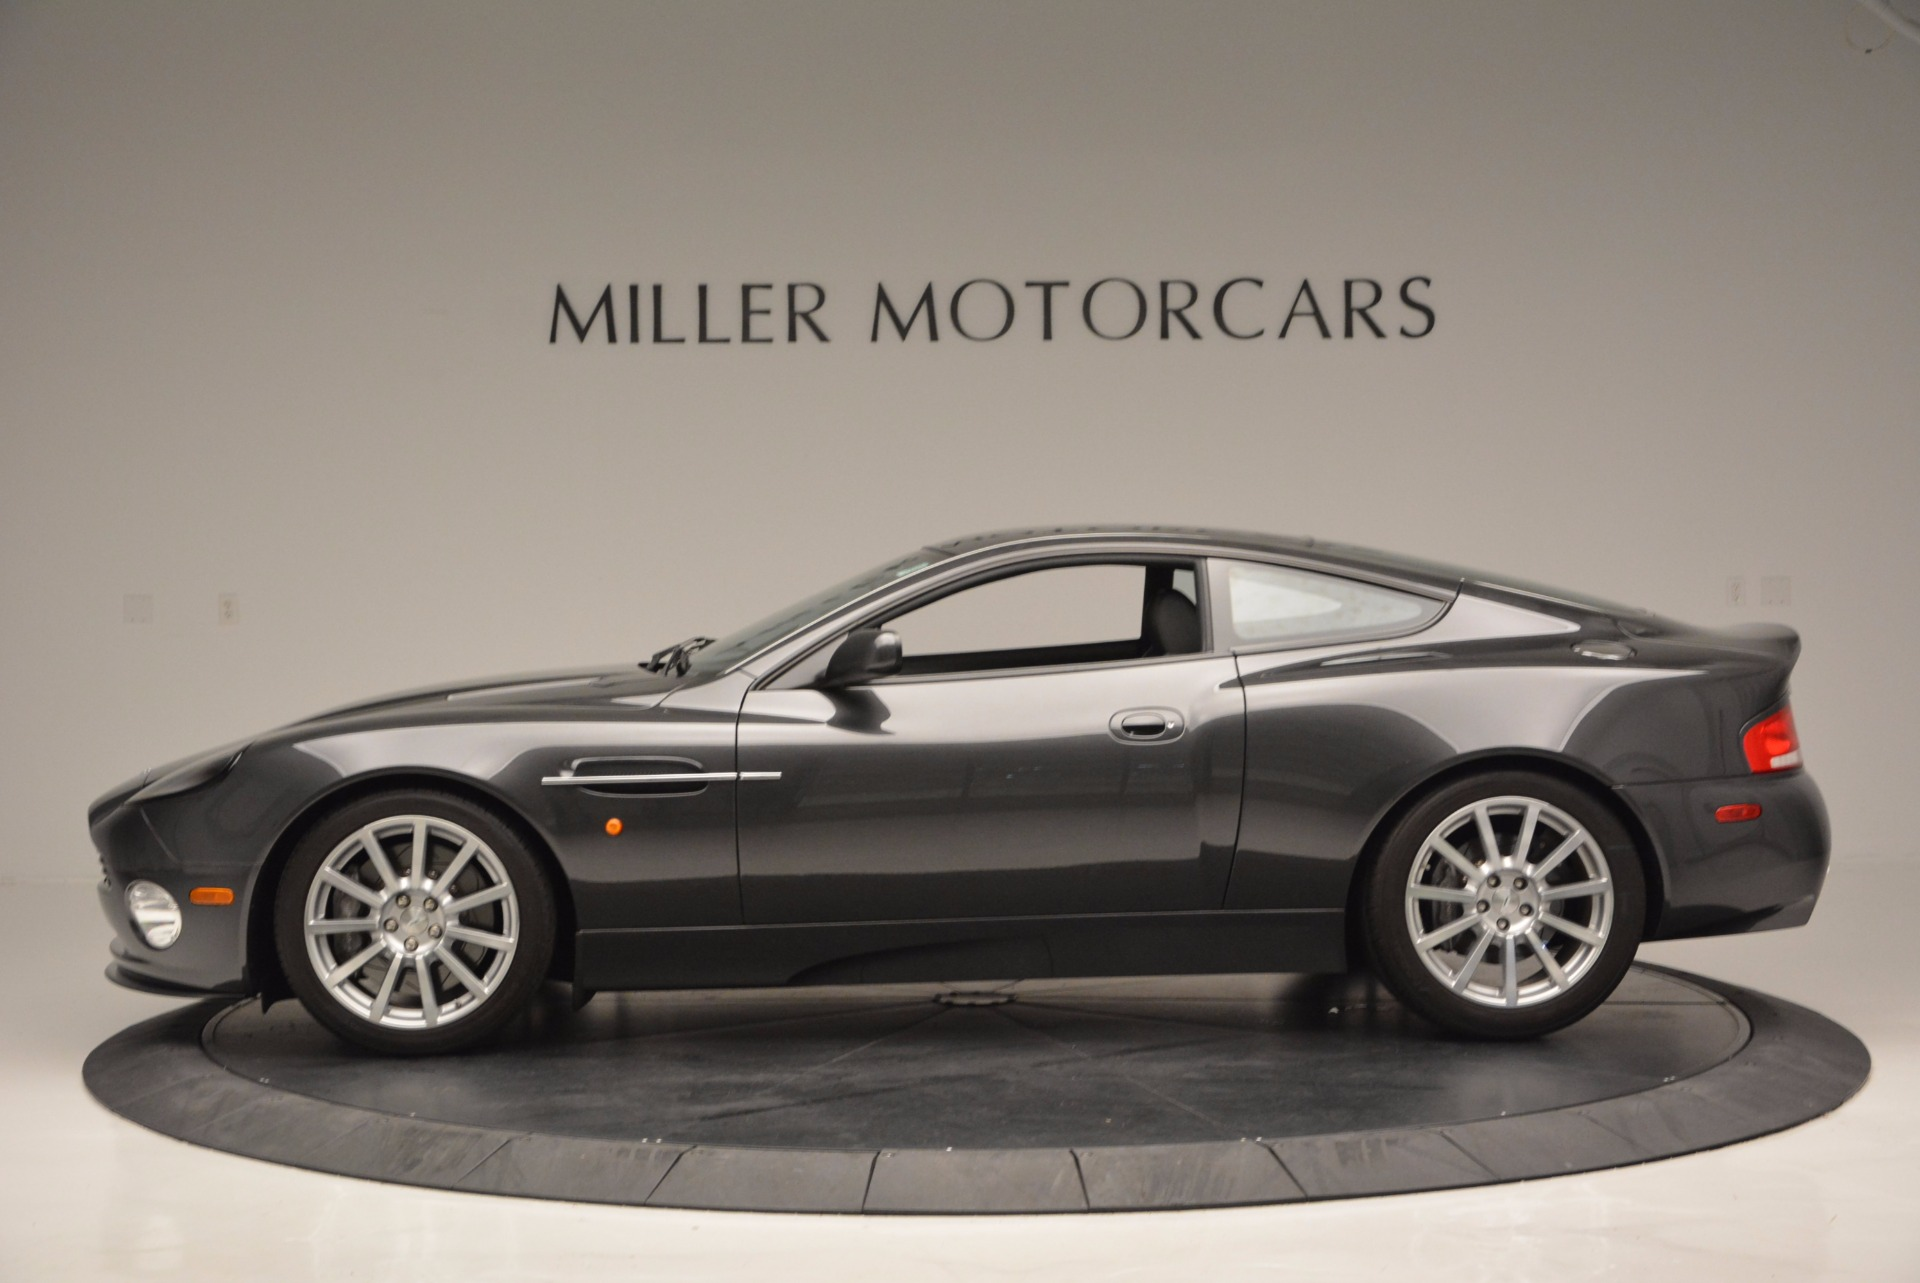 Used 2005 Aston Martin V12 Vanquish S For Sale In Westport, CT 645_p3